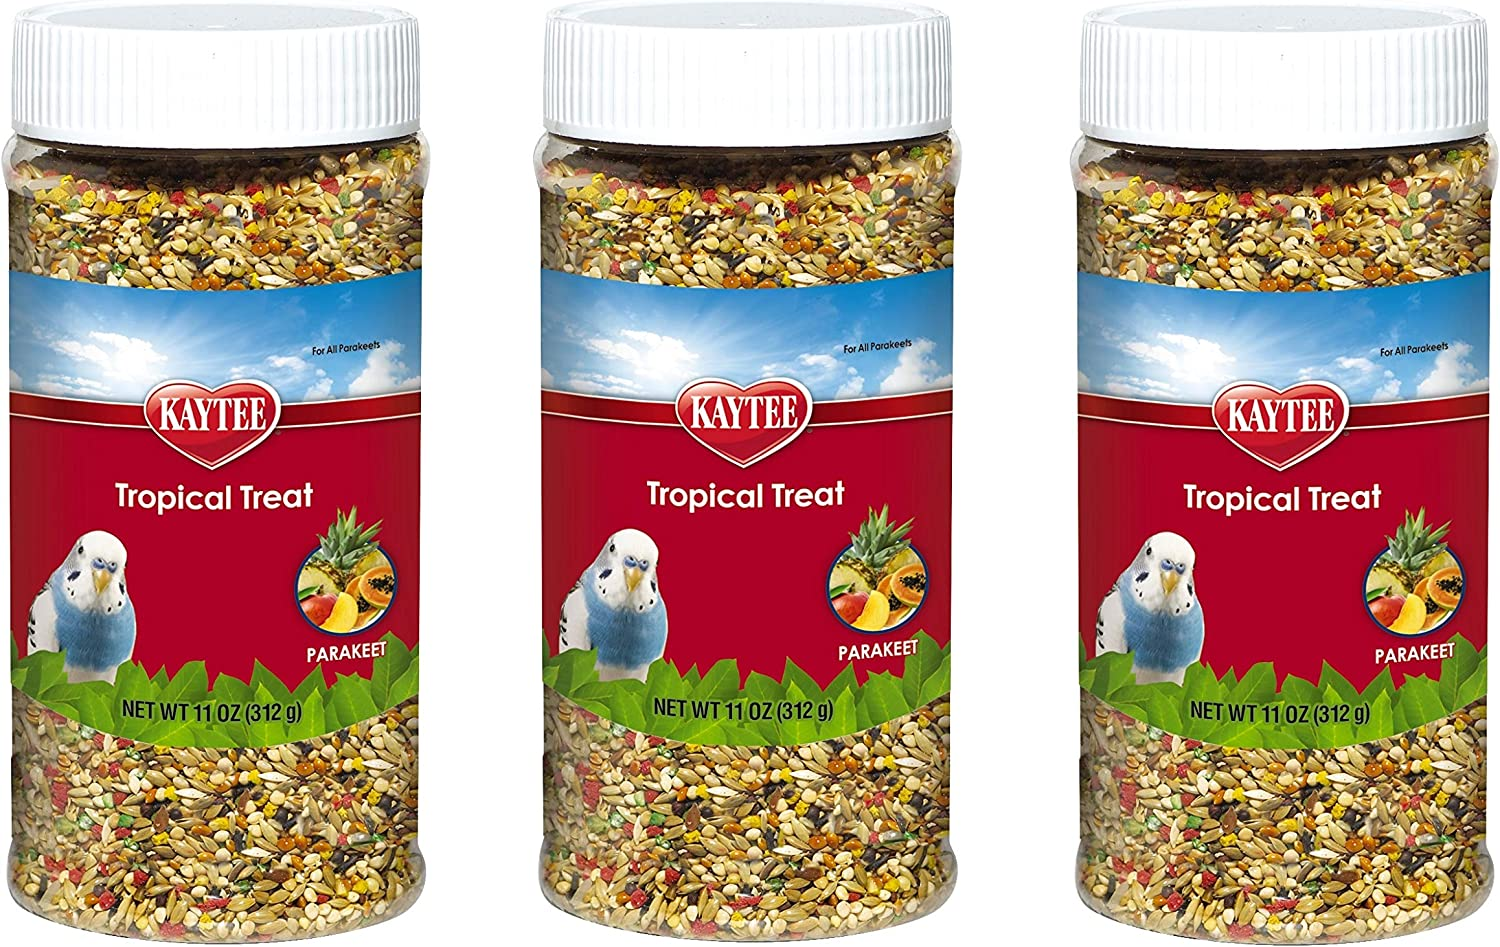 Kaytee 3 Pack of Tropical Treat, 11 Ounces each, Millet Grain and Fruit Snack for All Parakeets